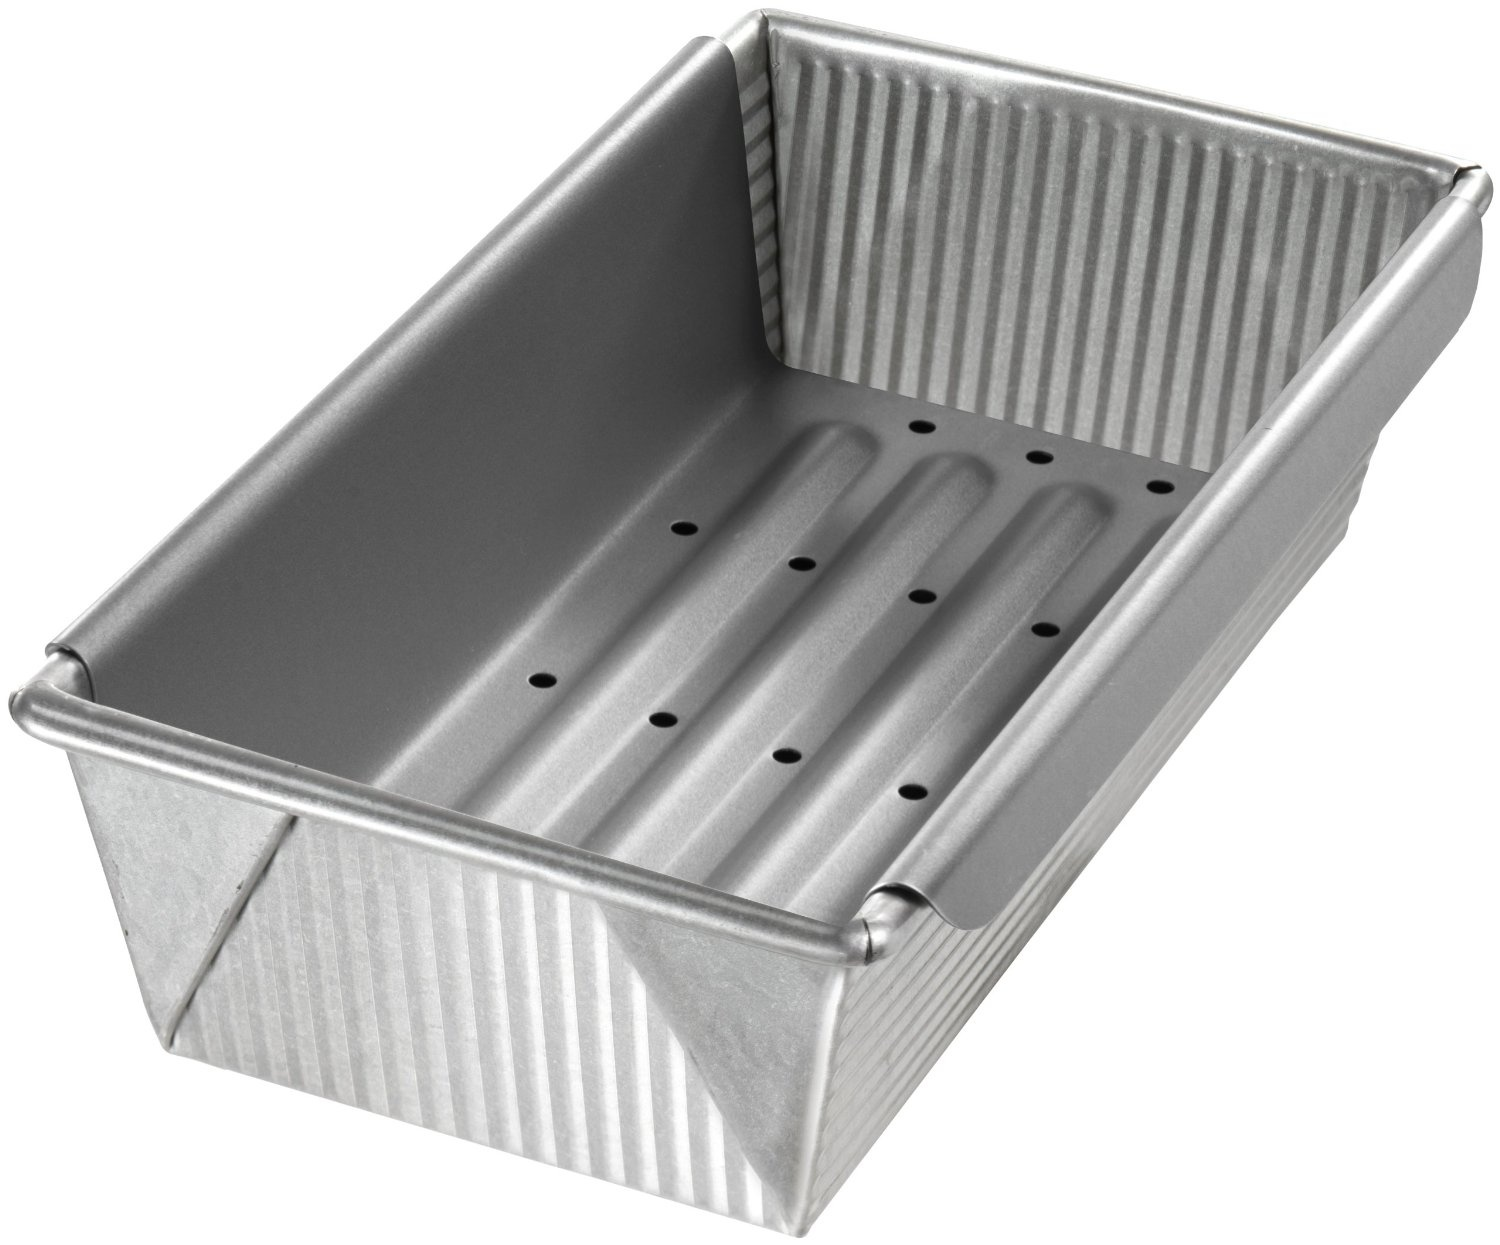 10″ x 5″ x 3″ Meatloaf Pan With Insert